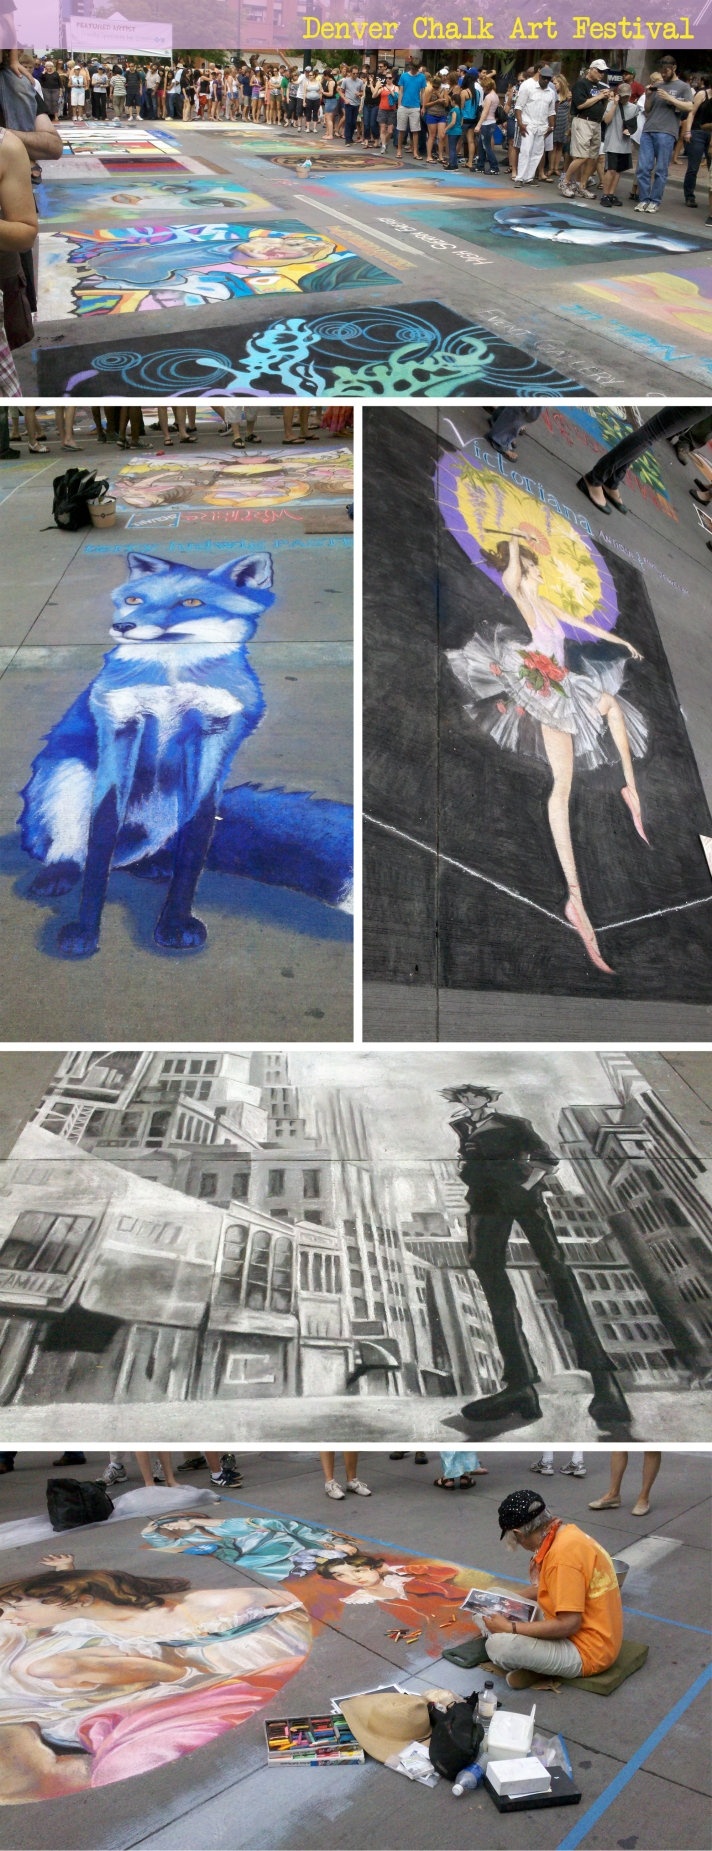 Chalk Art Festival Denver